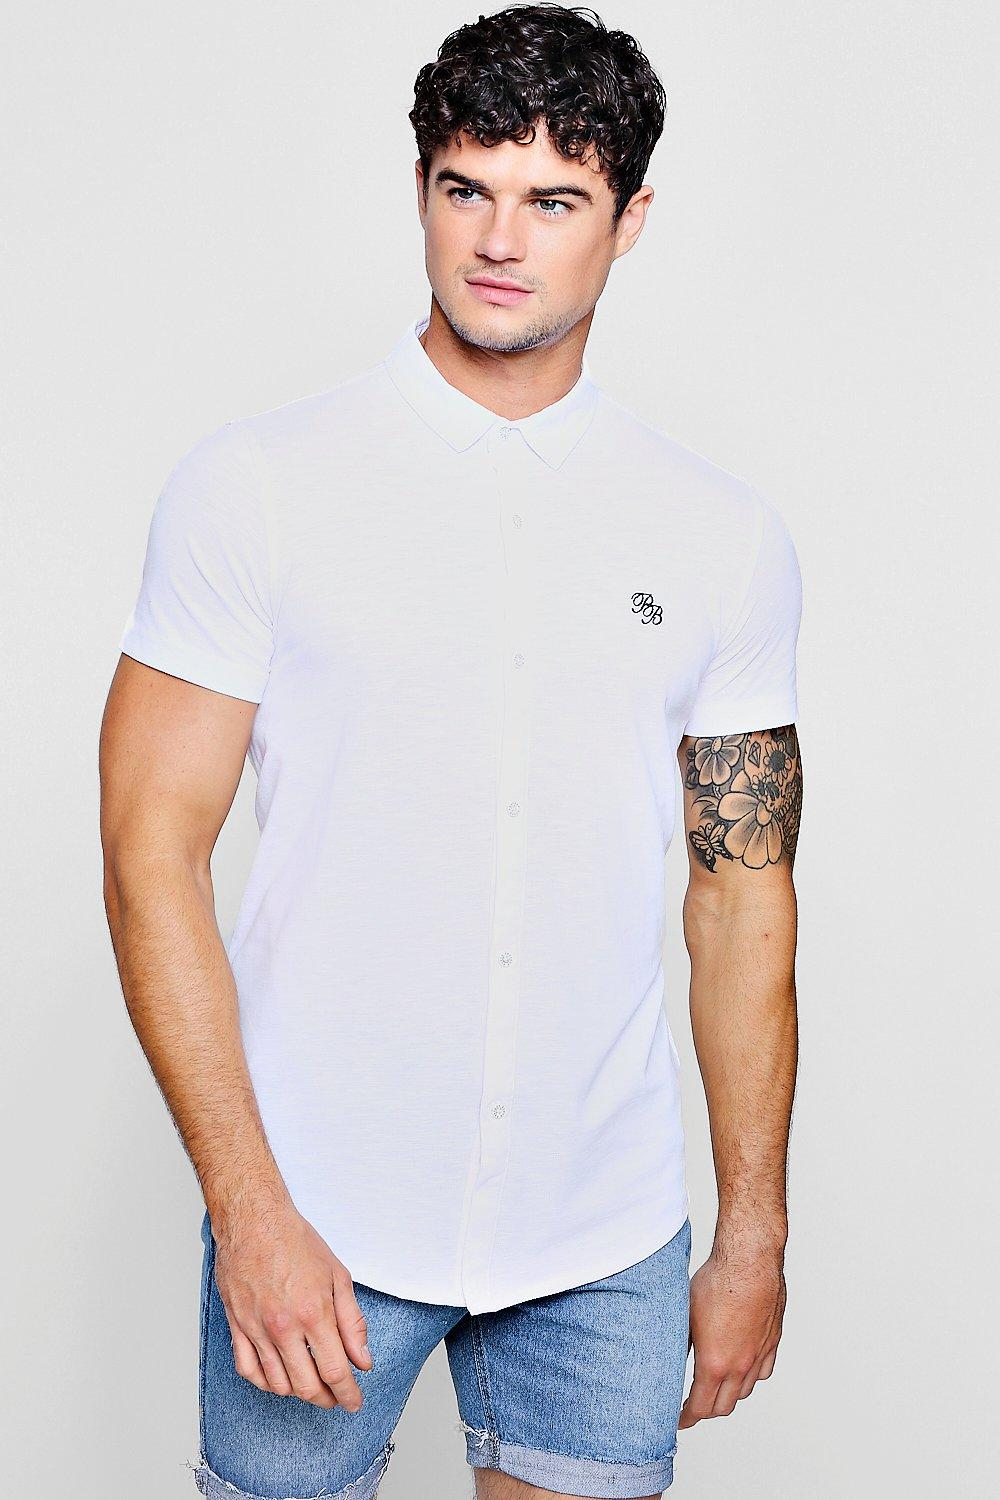 a45e02555 Short Sleeve Cotton Pique Logo Muscle Fit Shirt. Hover to zoom. Close video